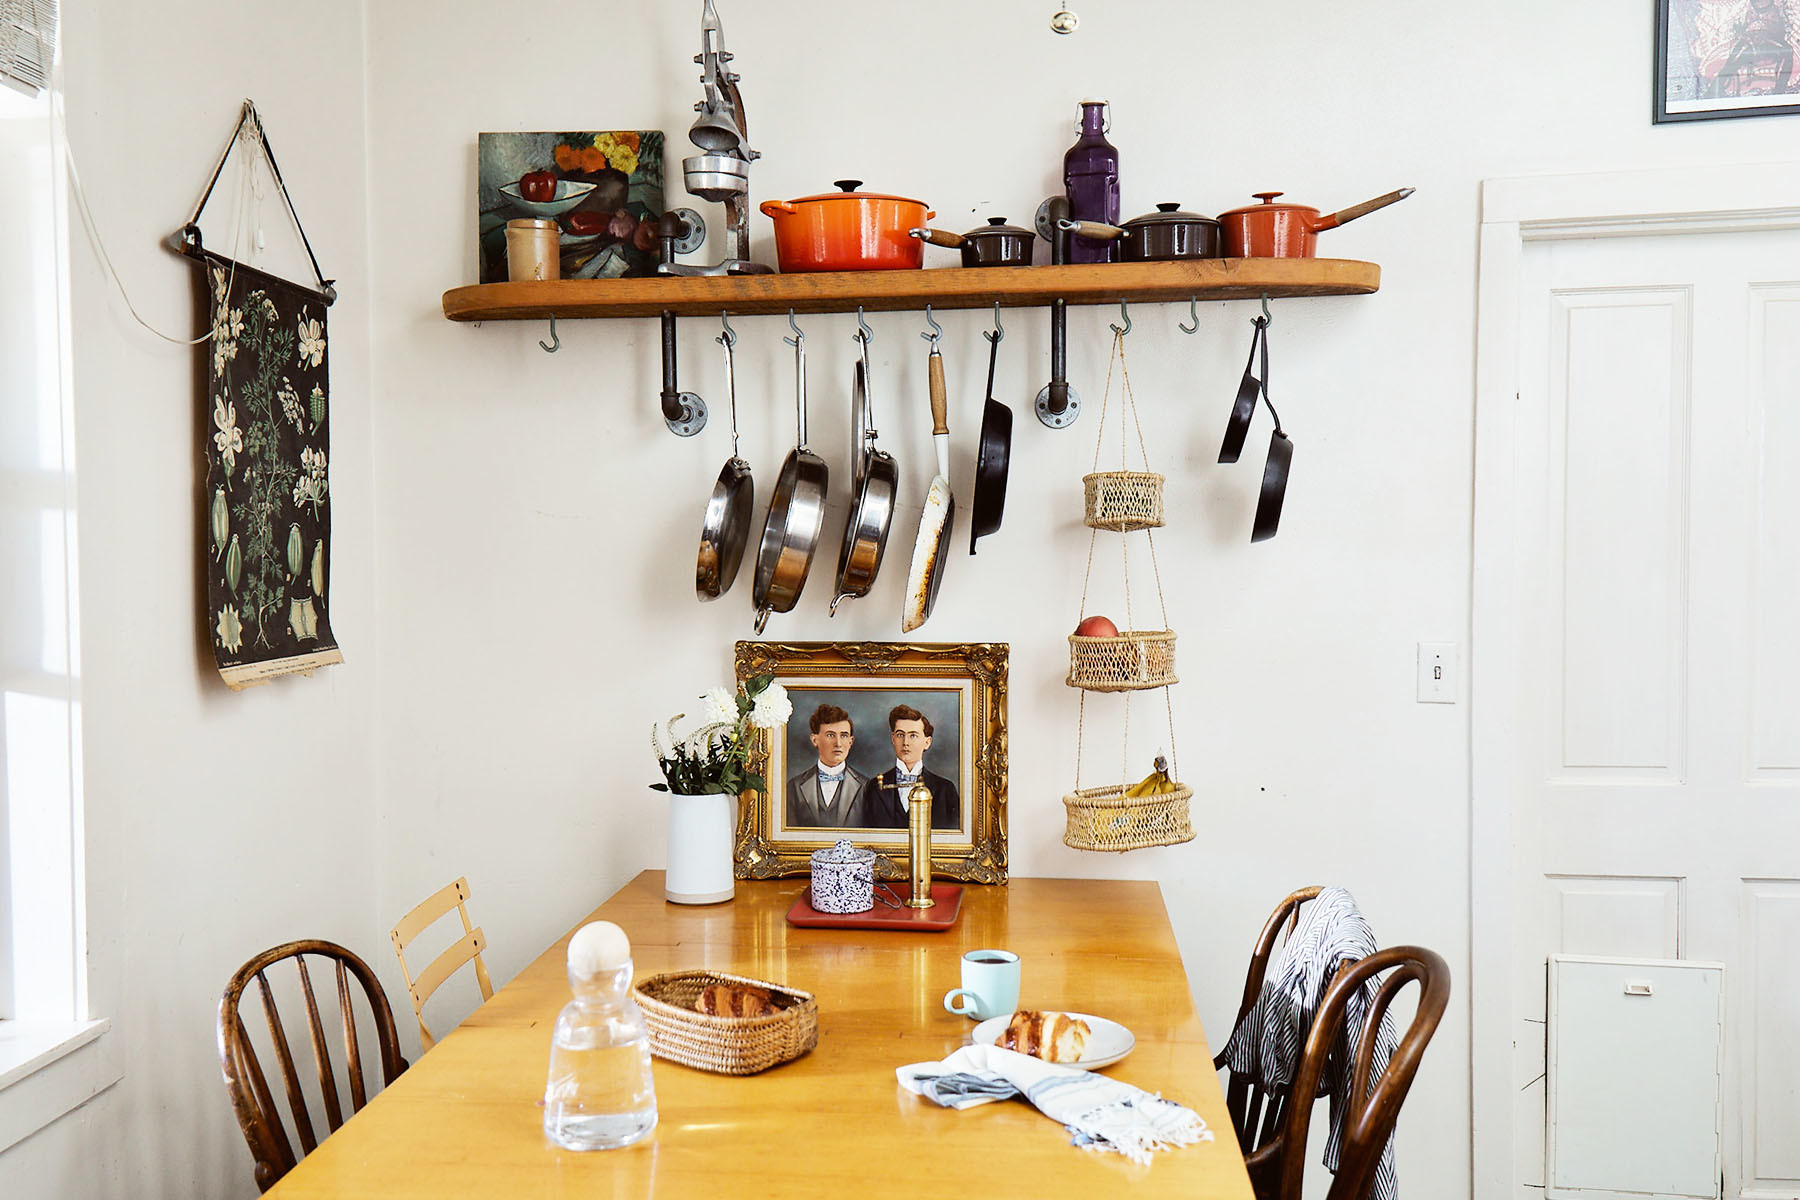 Rachel Colla's vintage cottage-style kitchen is decorated with repurposed family treasures. Vintage George Nelson for Herman Miller Dining Table | Vintage Bentwood Chairs | Vintage Artwork | Vintage Pots and Pans | Vintage Tapestry | Heath Mug | Heath Ceramics | Clad Home Water Pitcher | Atomic Garden Hanging Baskets.